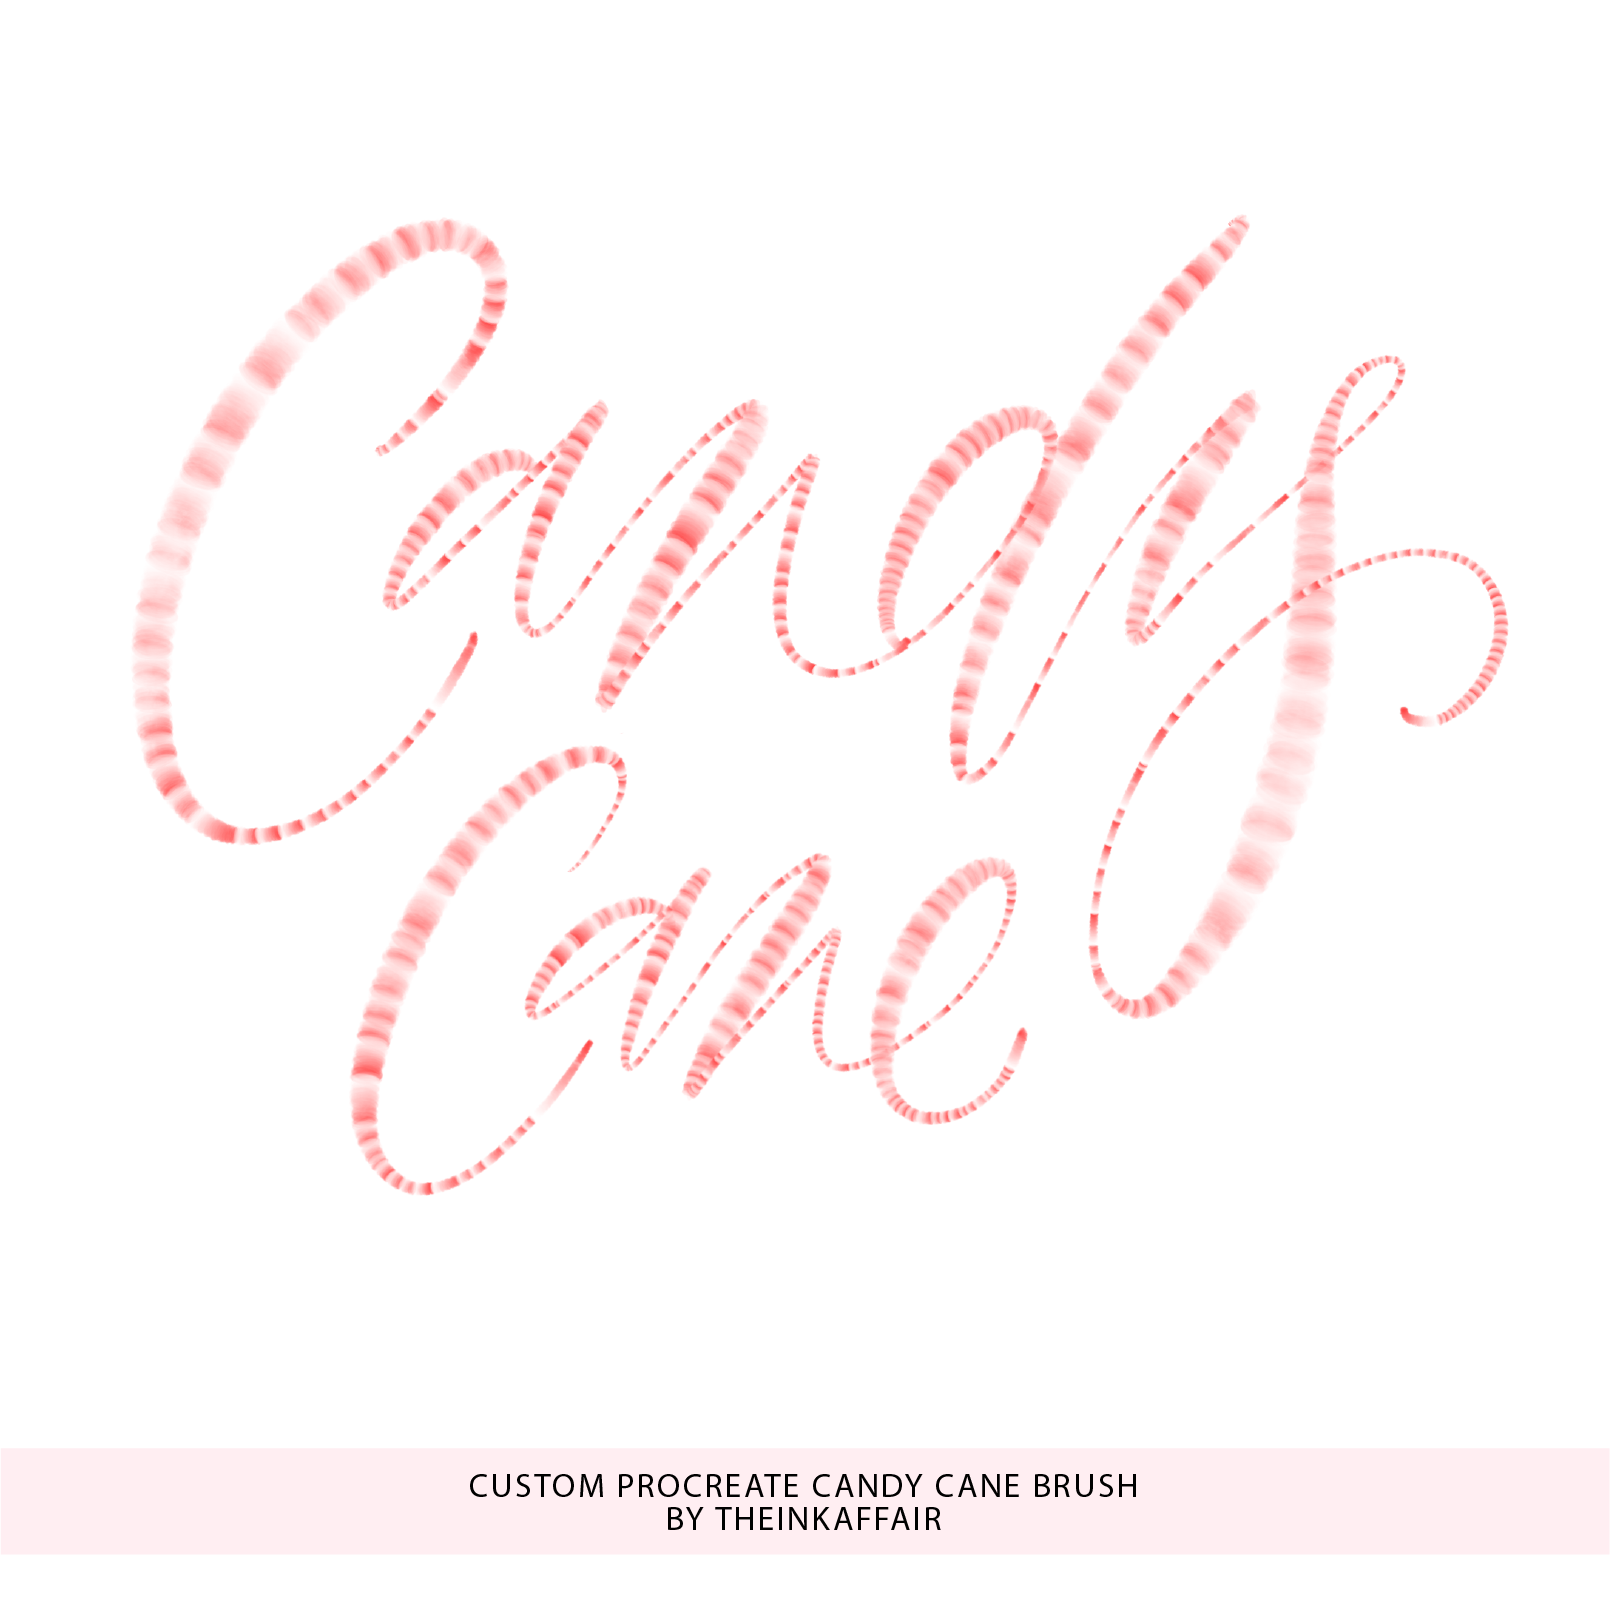 Custom Procreate Candy Cane Brush